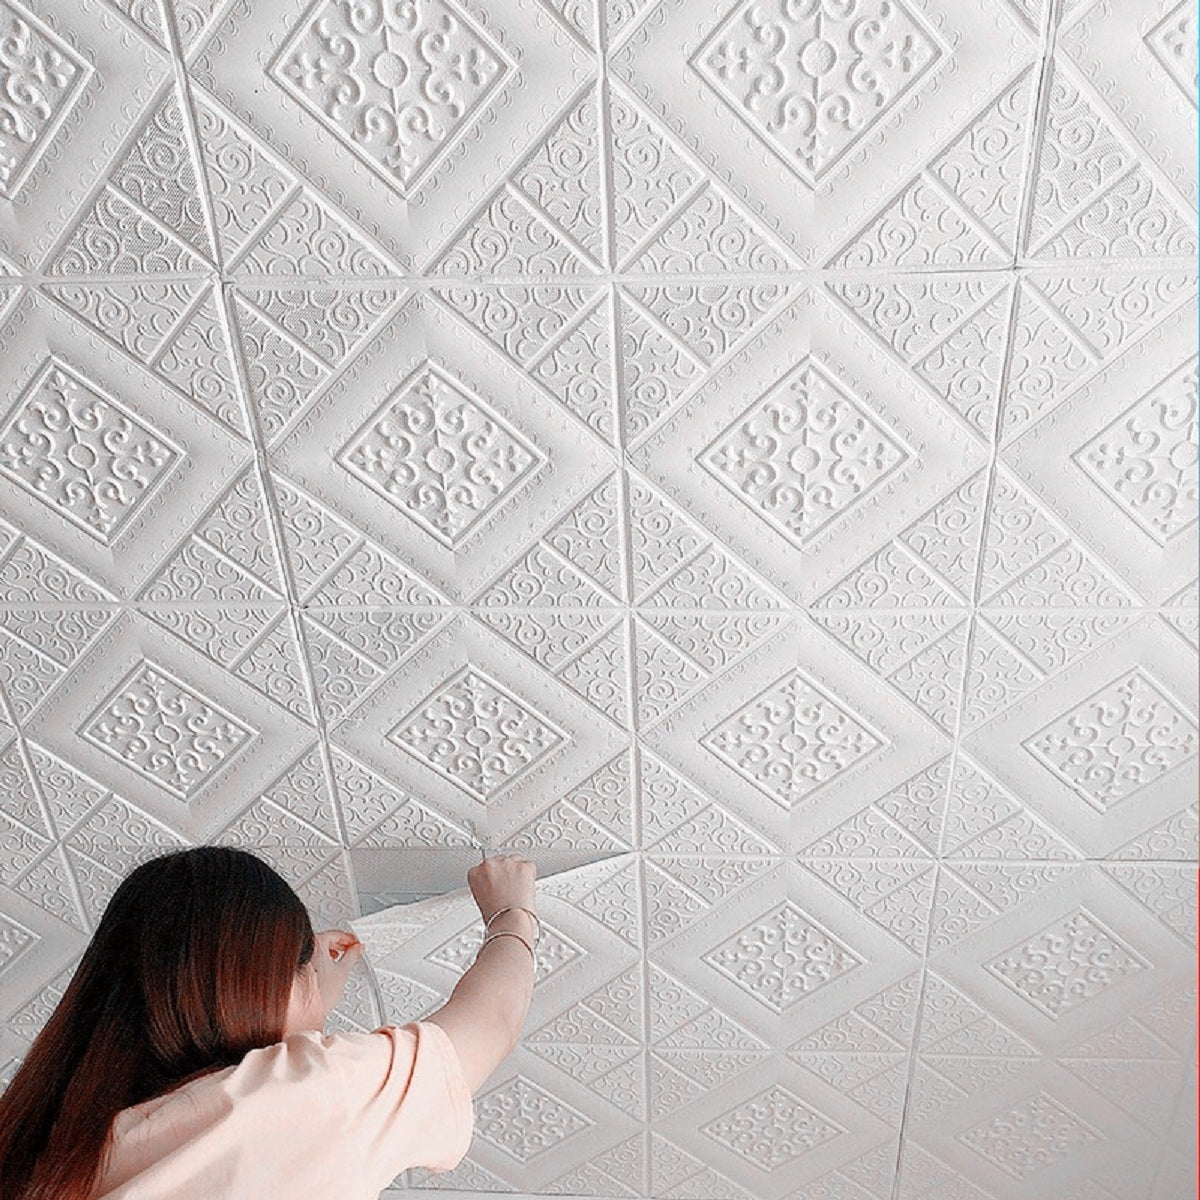 Nasmodo® 3D Ceiling Tiles Panel Vinyl Wallpaper Stickers Waterproof Foam self-Adhesive Wall Stickers for Home, Living Room, Bedroom Wall Panels Tiles Paper for Decoration((70 * 70 cm)